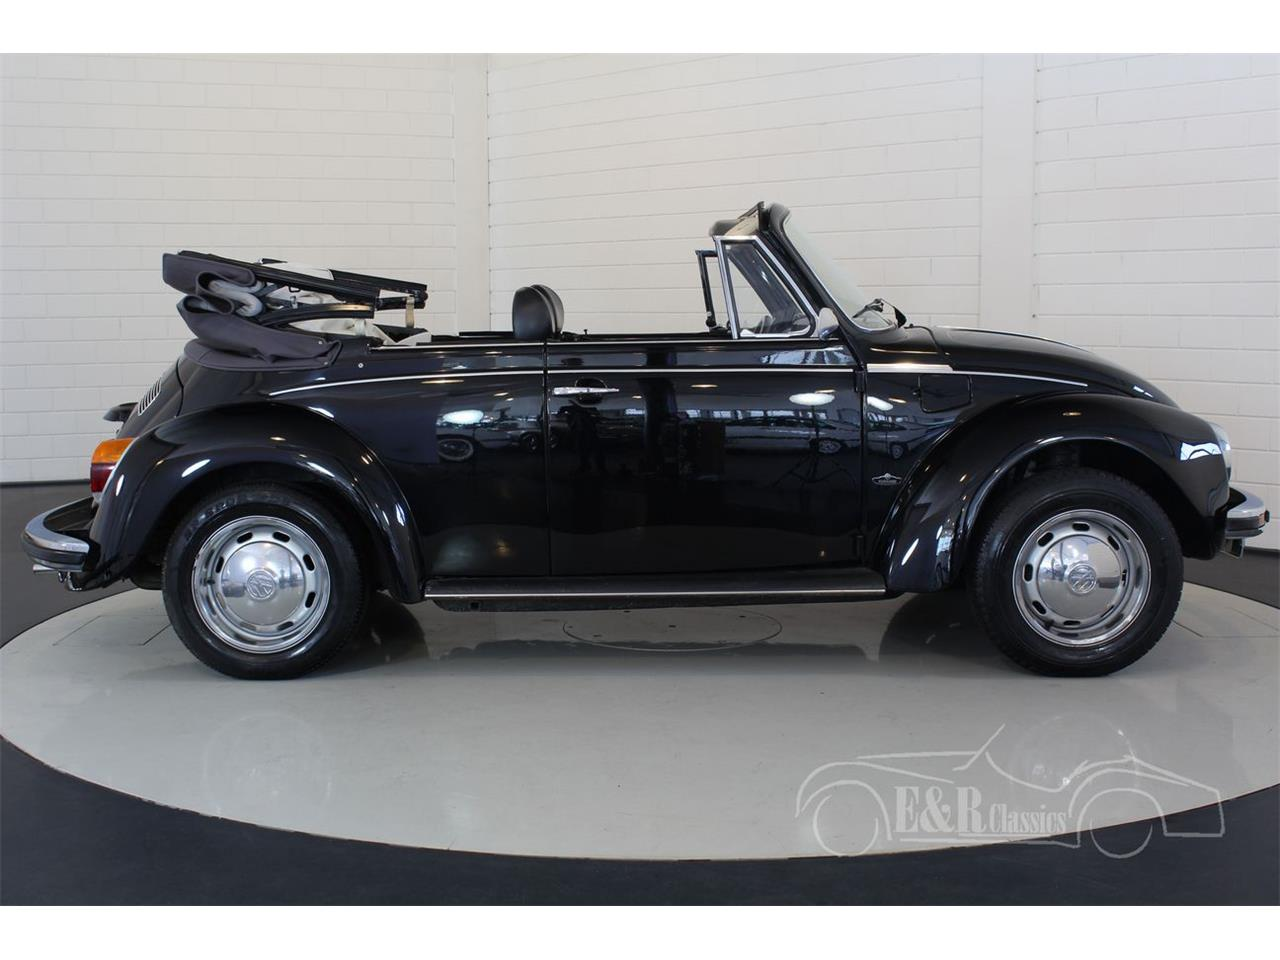 Large Picture of '77 Volkswagen Beetle - $28,450.00 Offered by E & R Classics - N8E6